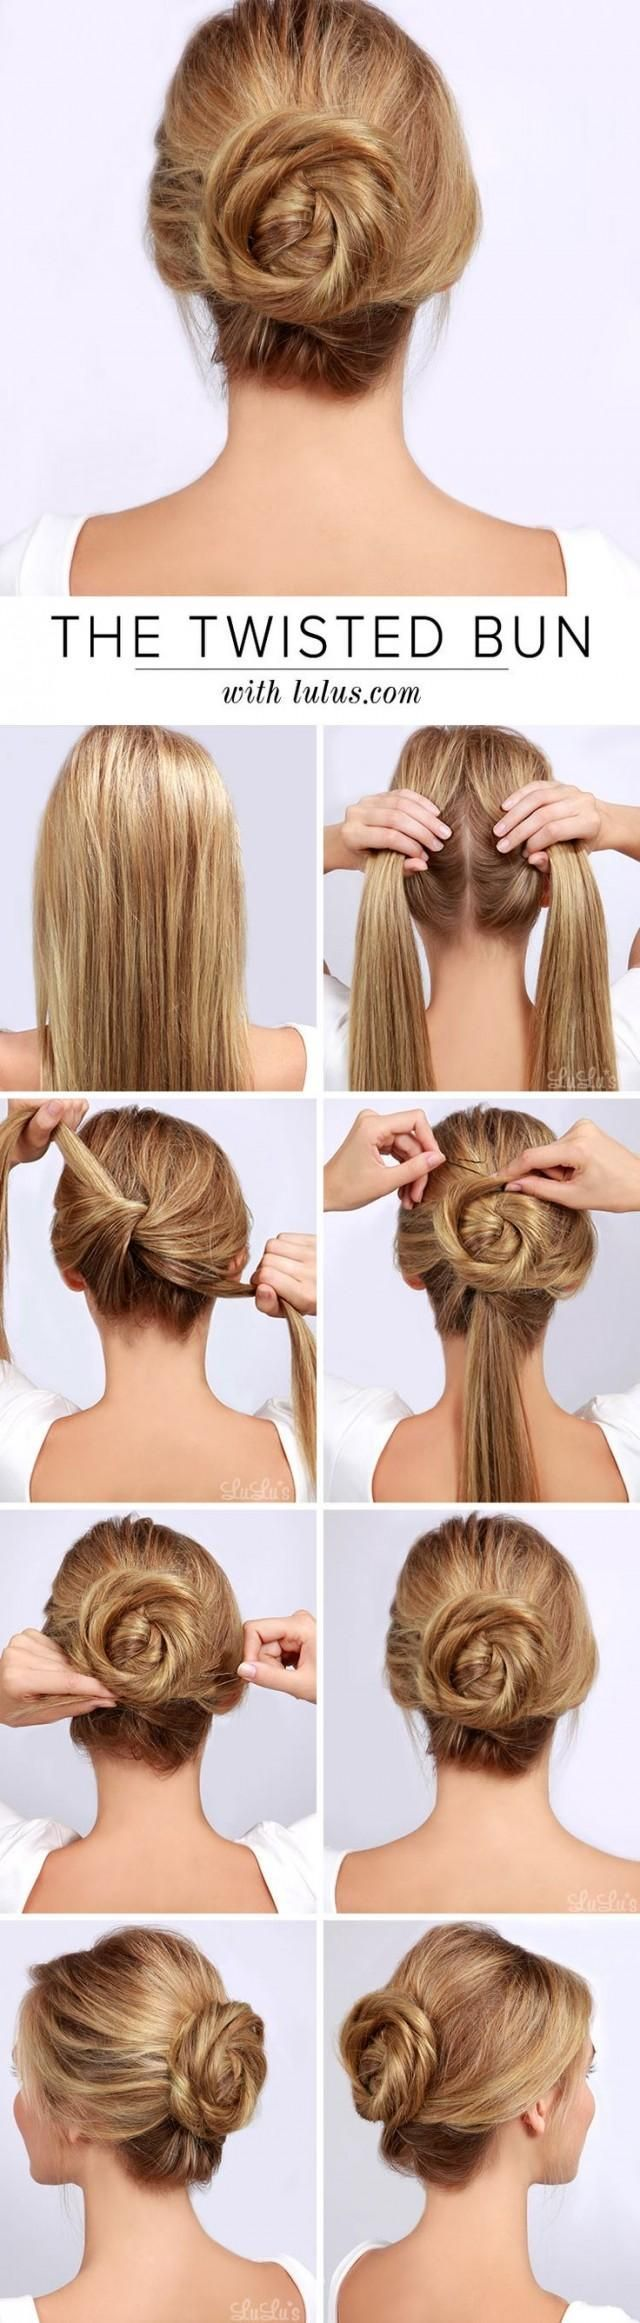 low twisted bun step by step